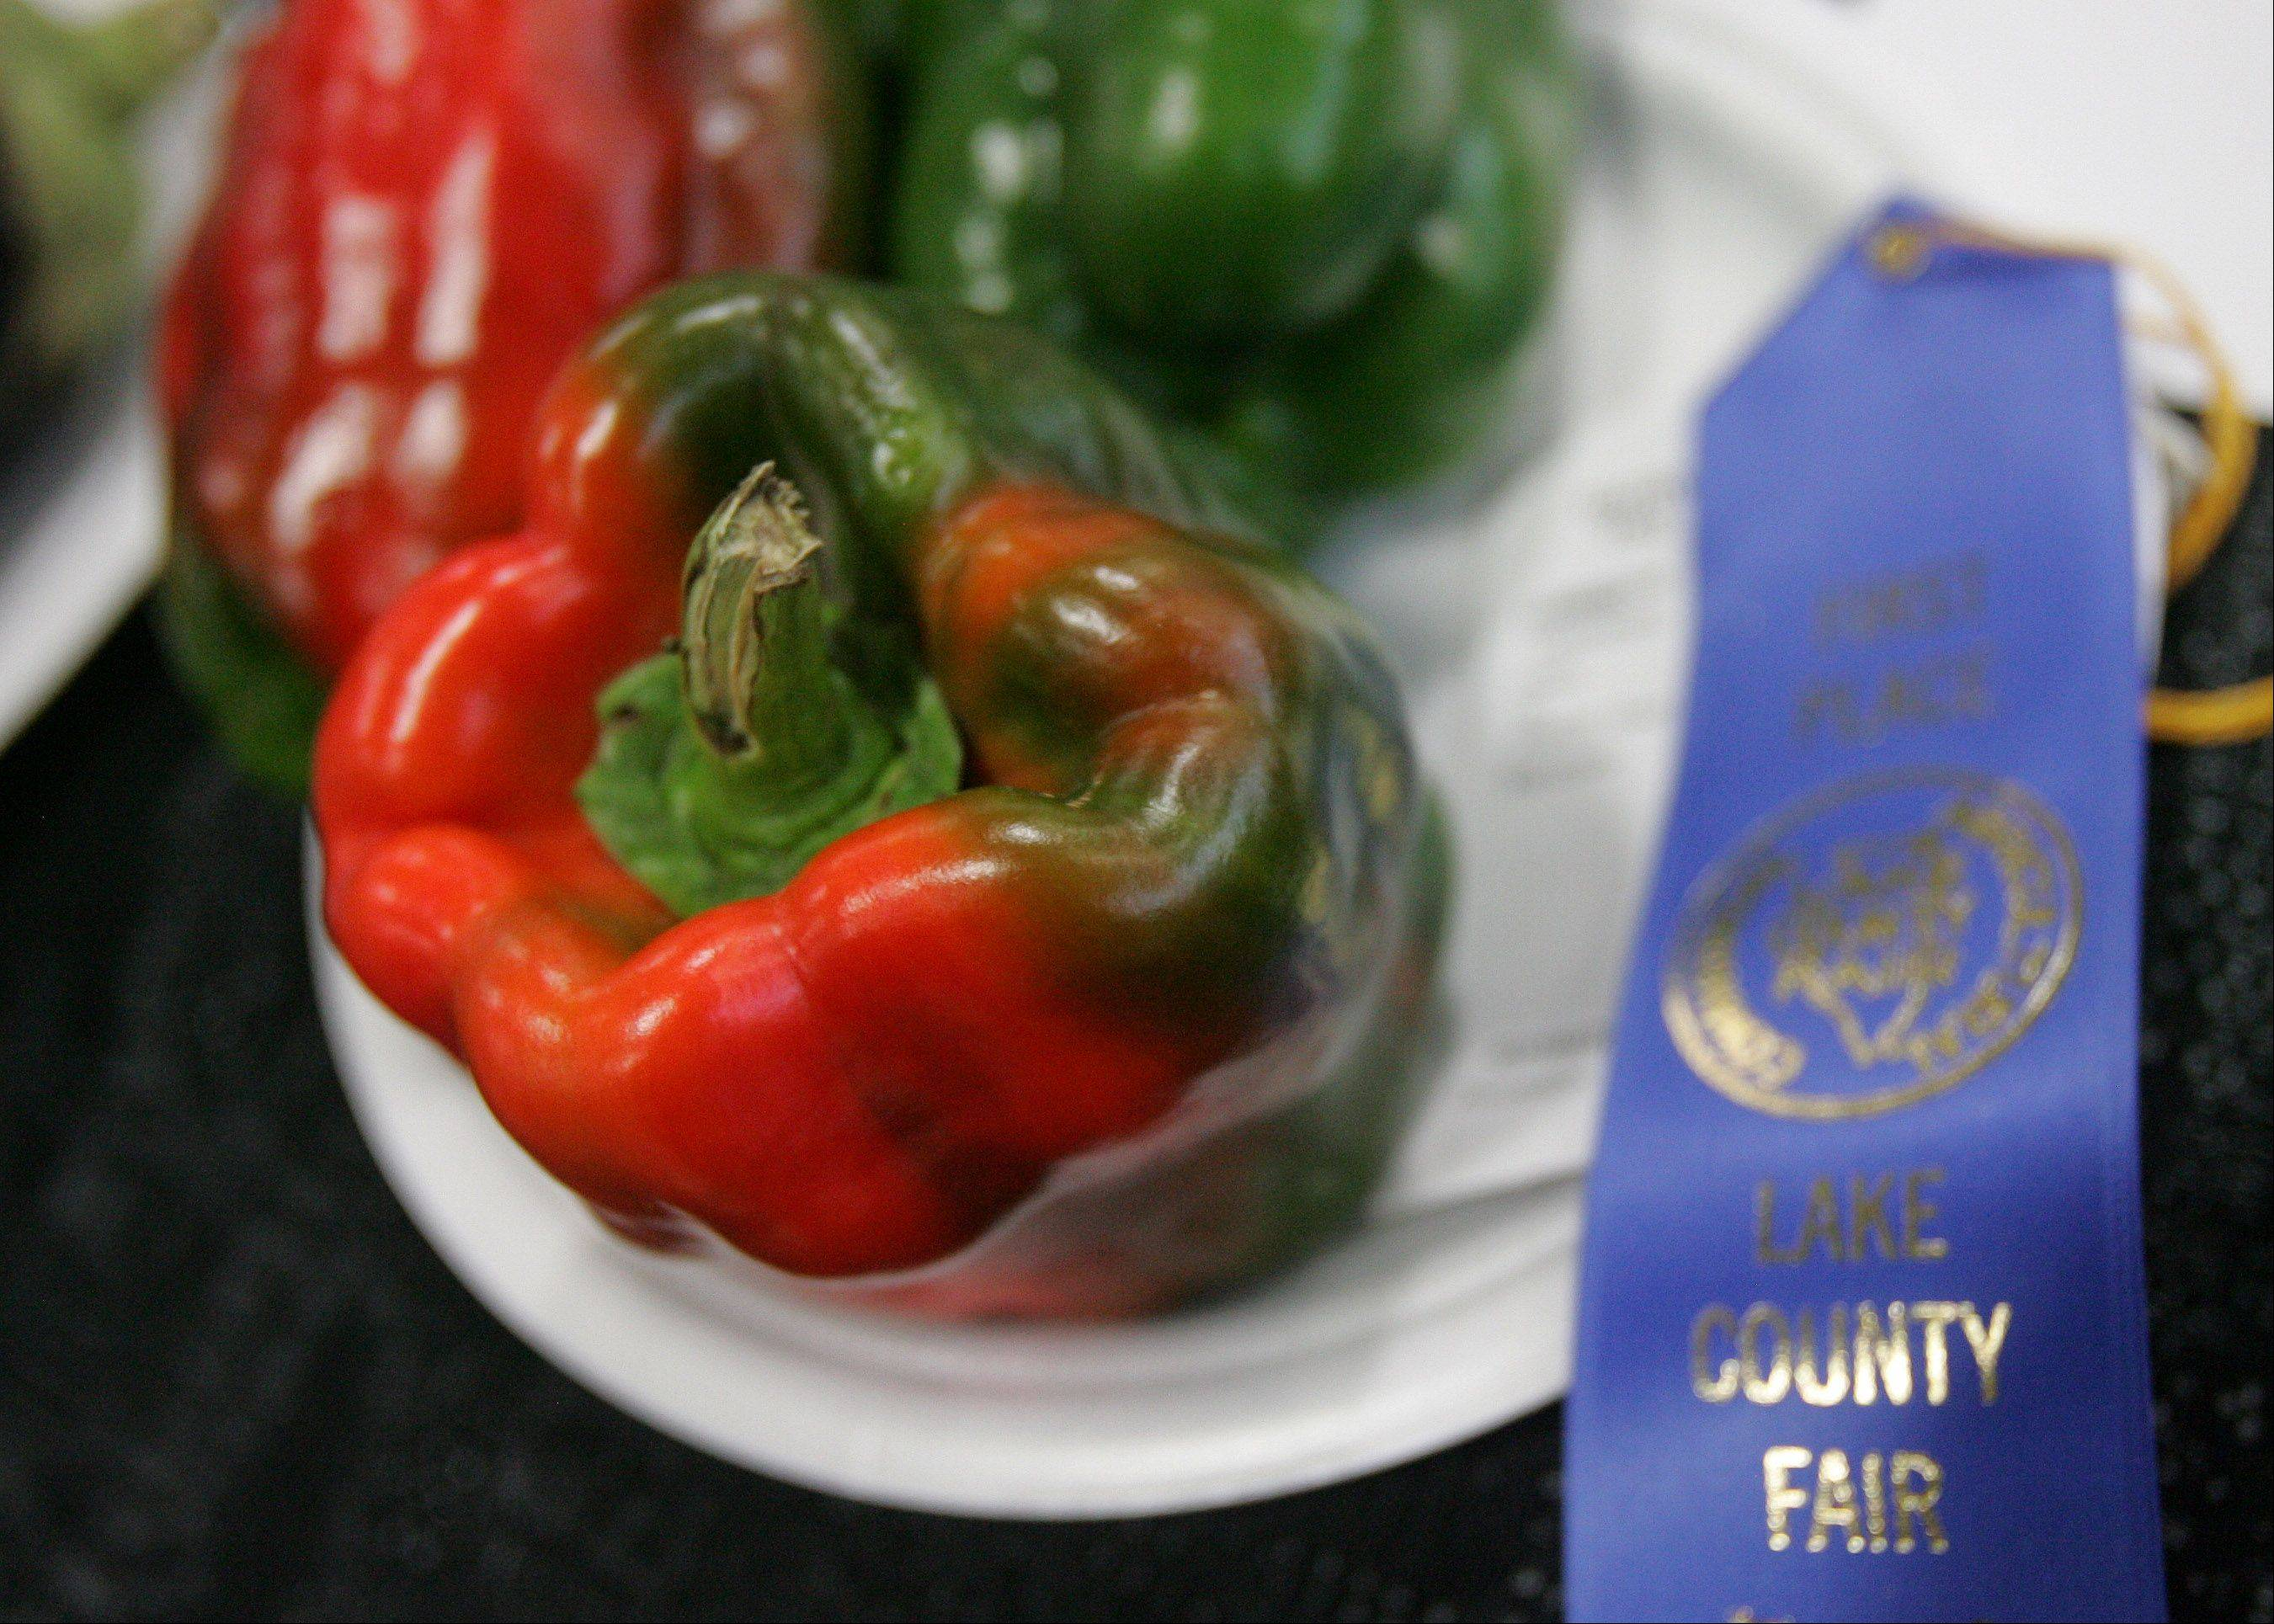 Prize winning peppers during last day of the 84th Annual Lake County Fair Sunday in Grayslake.